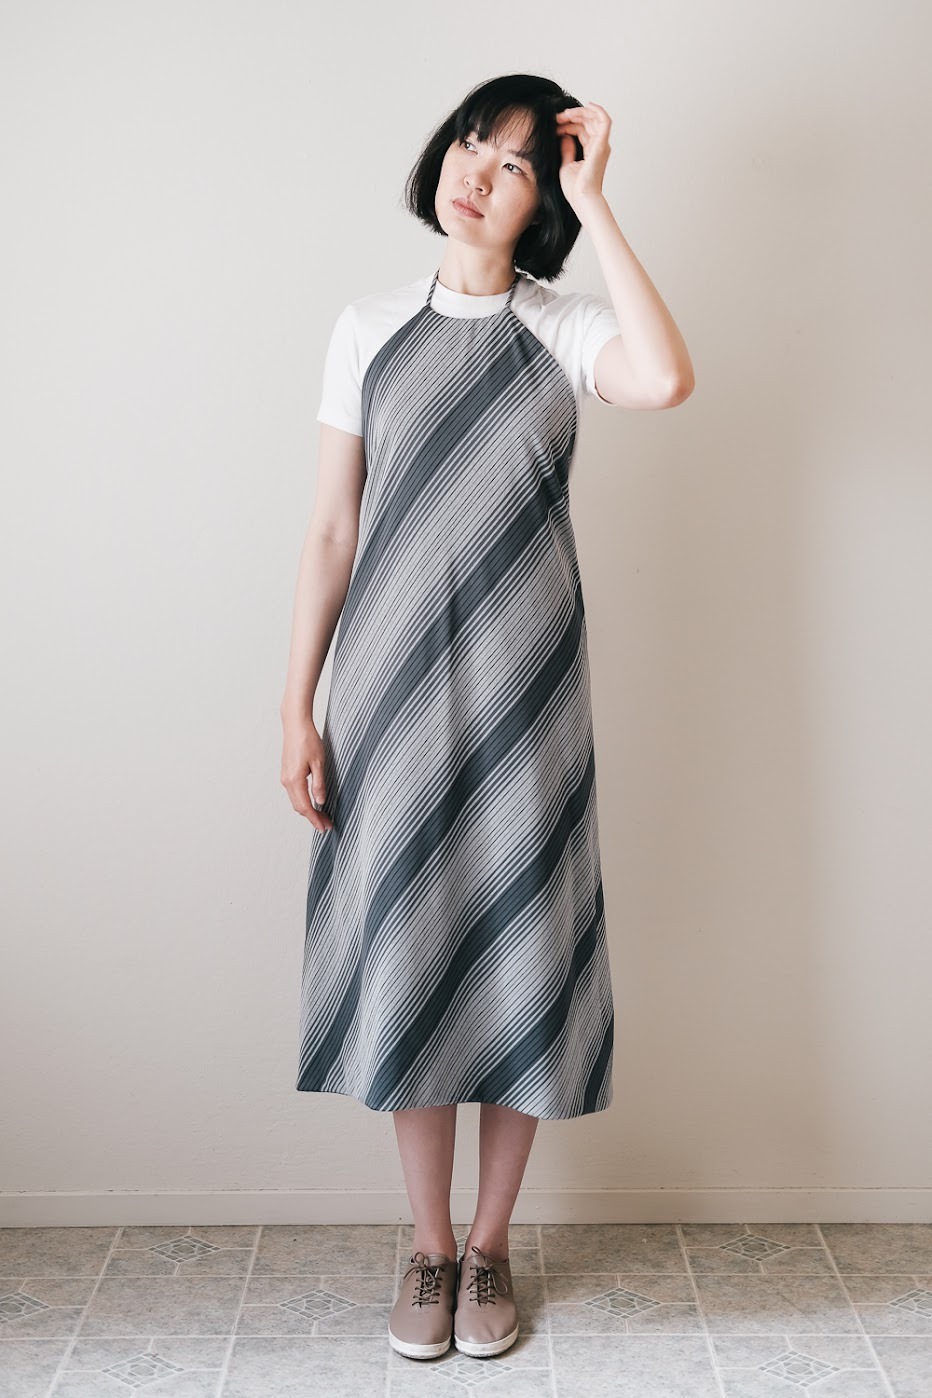 DIY Three-Way Apron Dress - DIY Fashion Garments